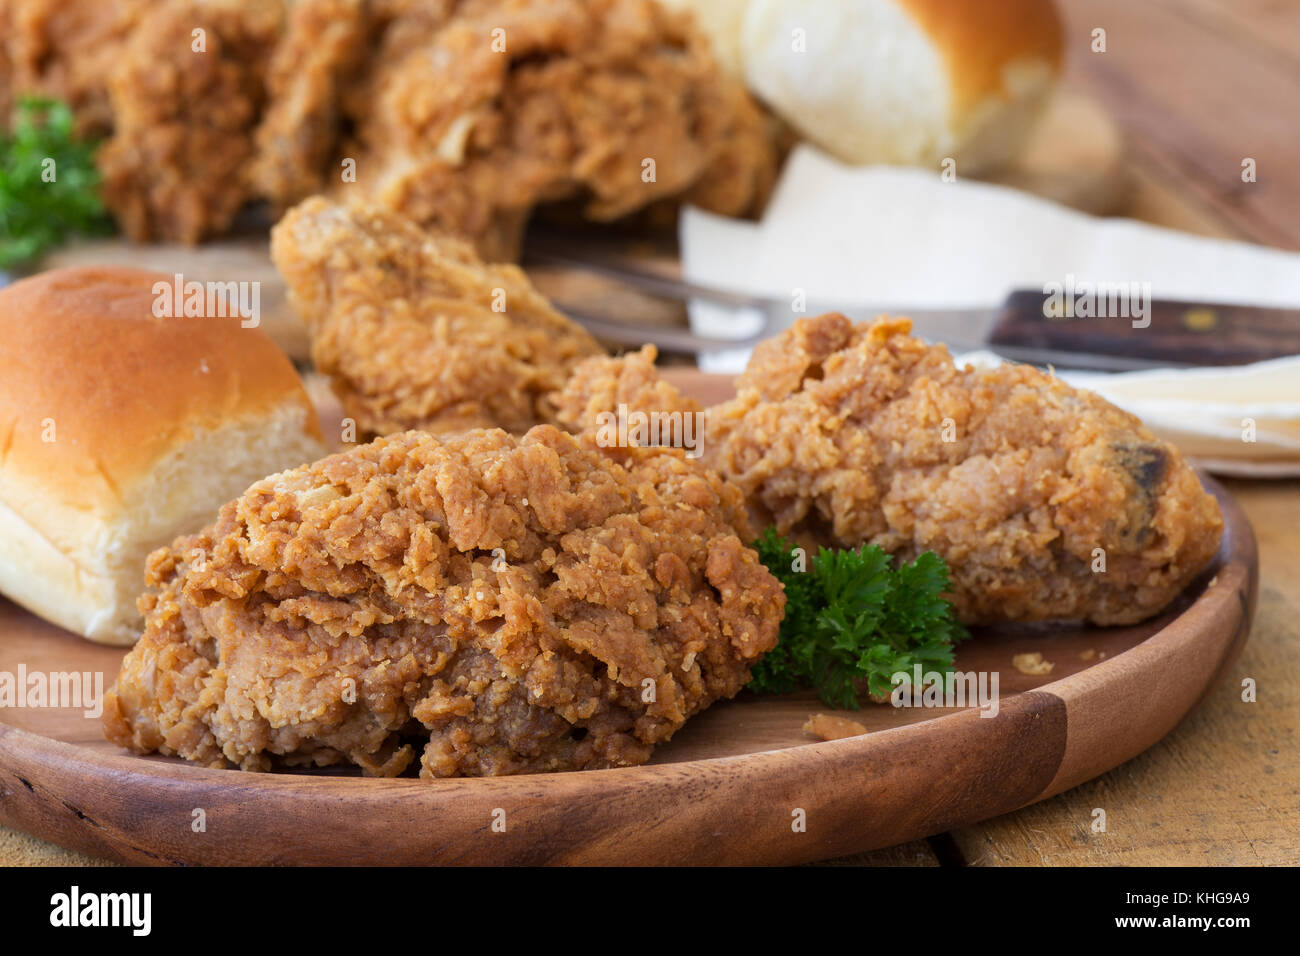 Fried chicken and dinner roll on a wooden plate - Stock Image